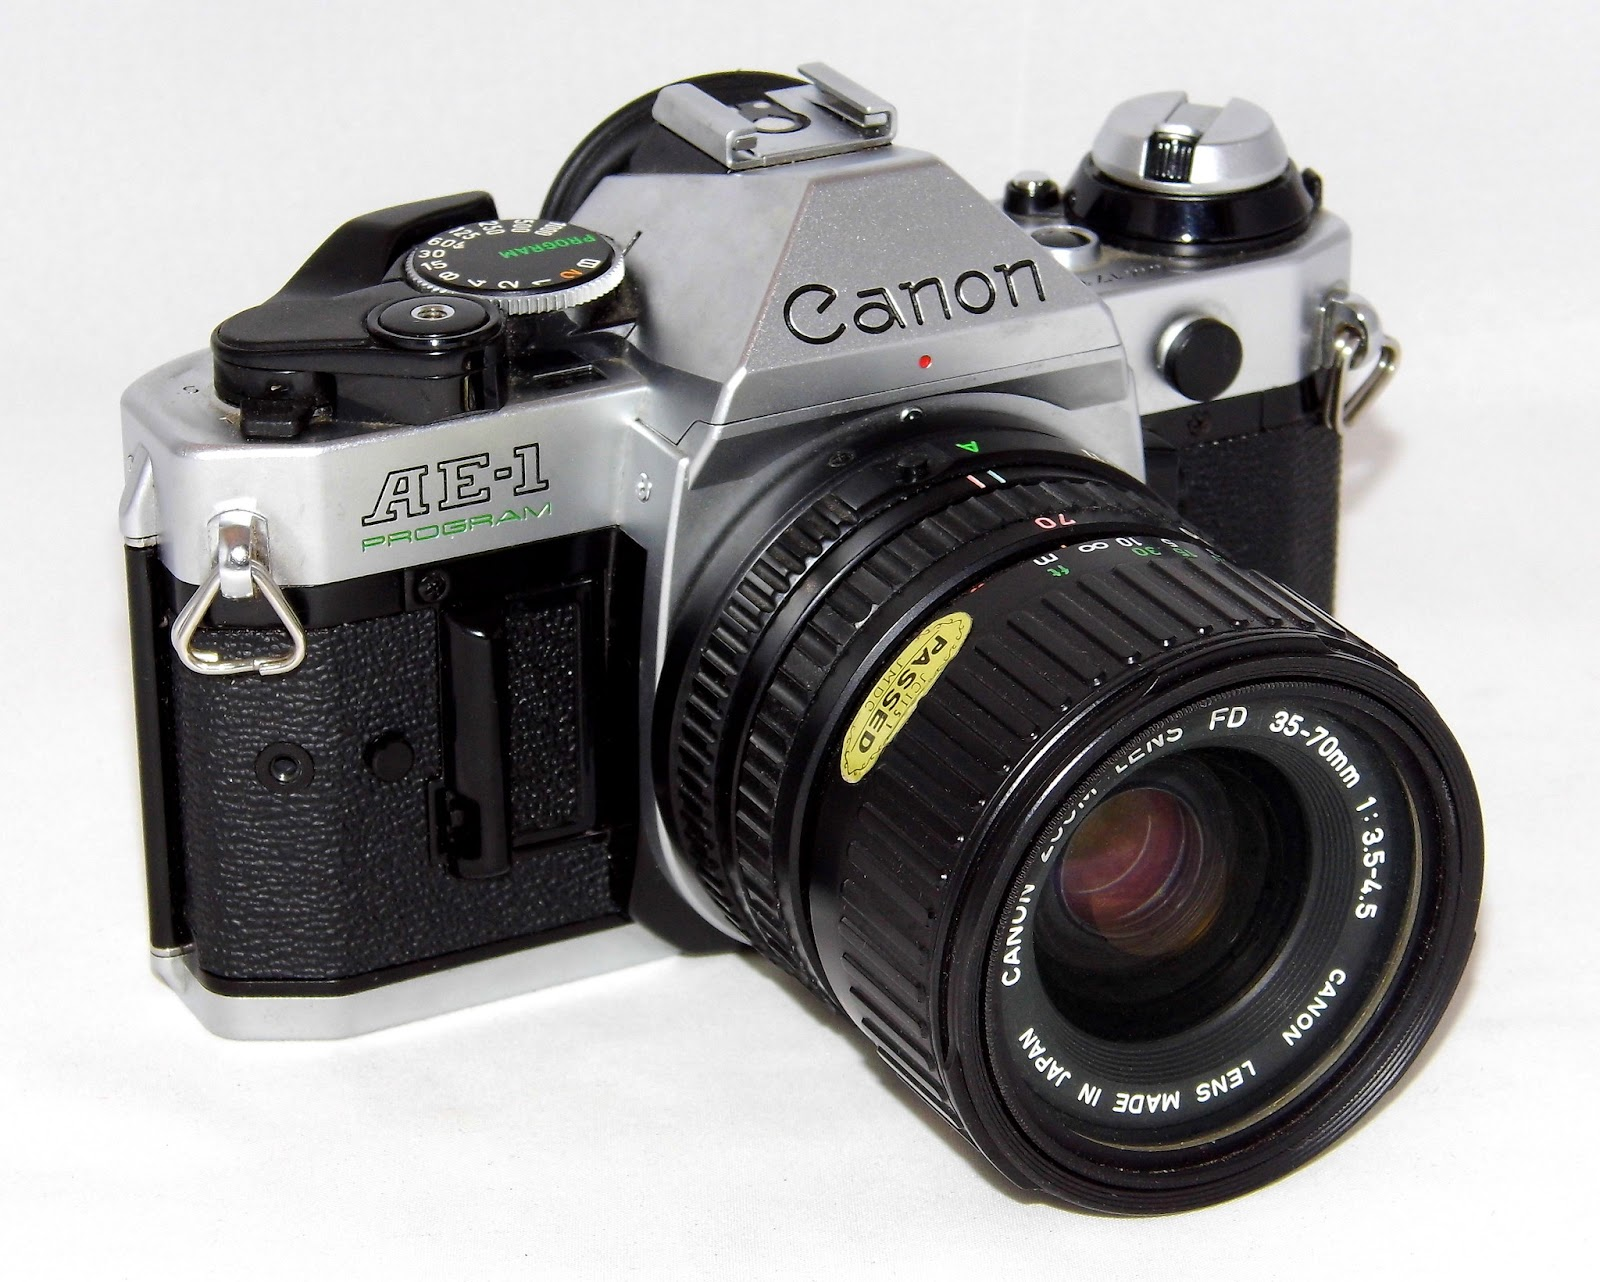 An image of the Canon AF-1 Program camera